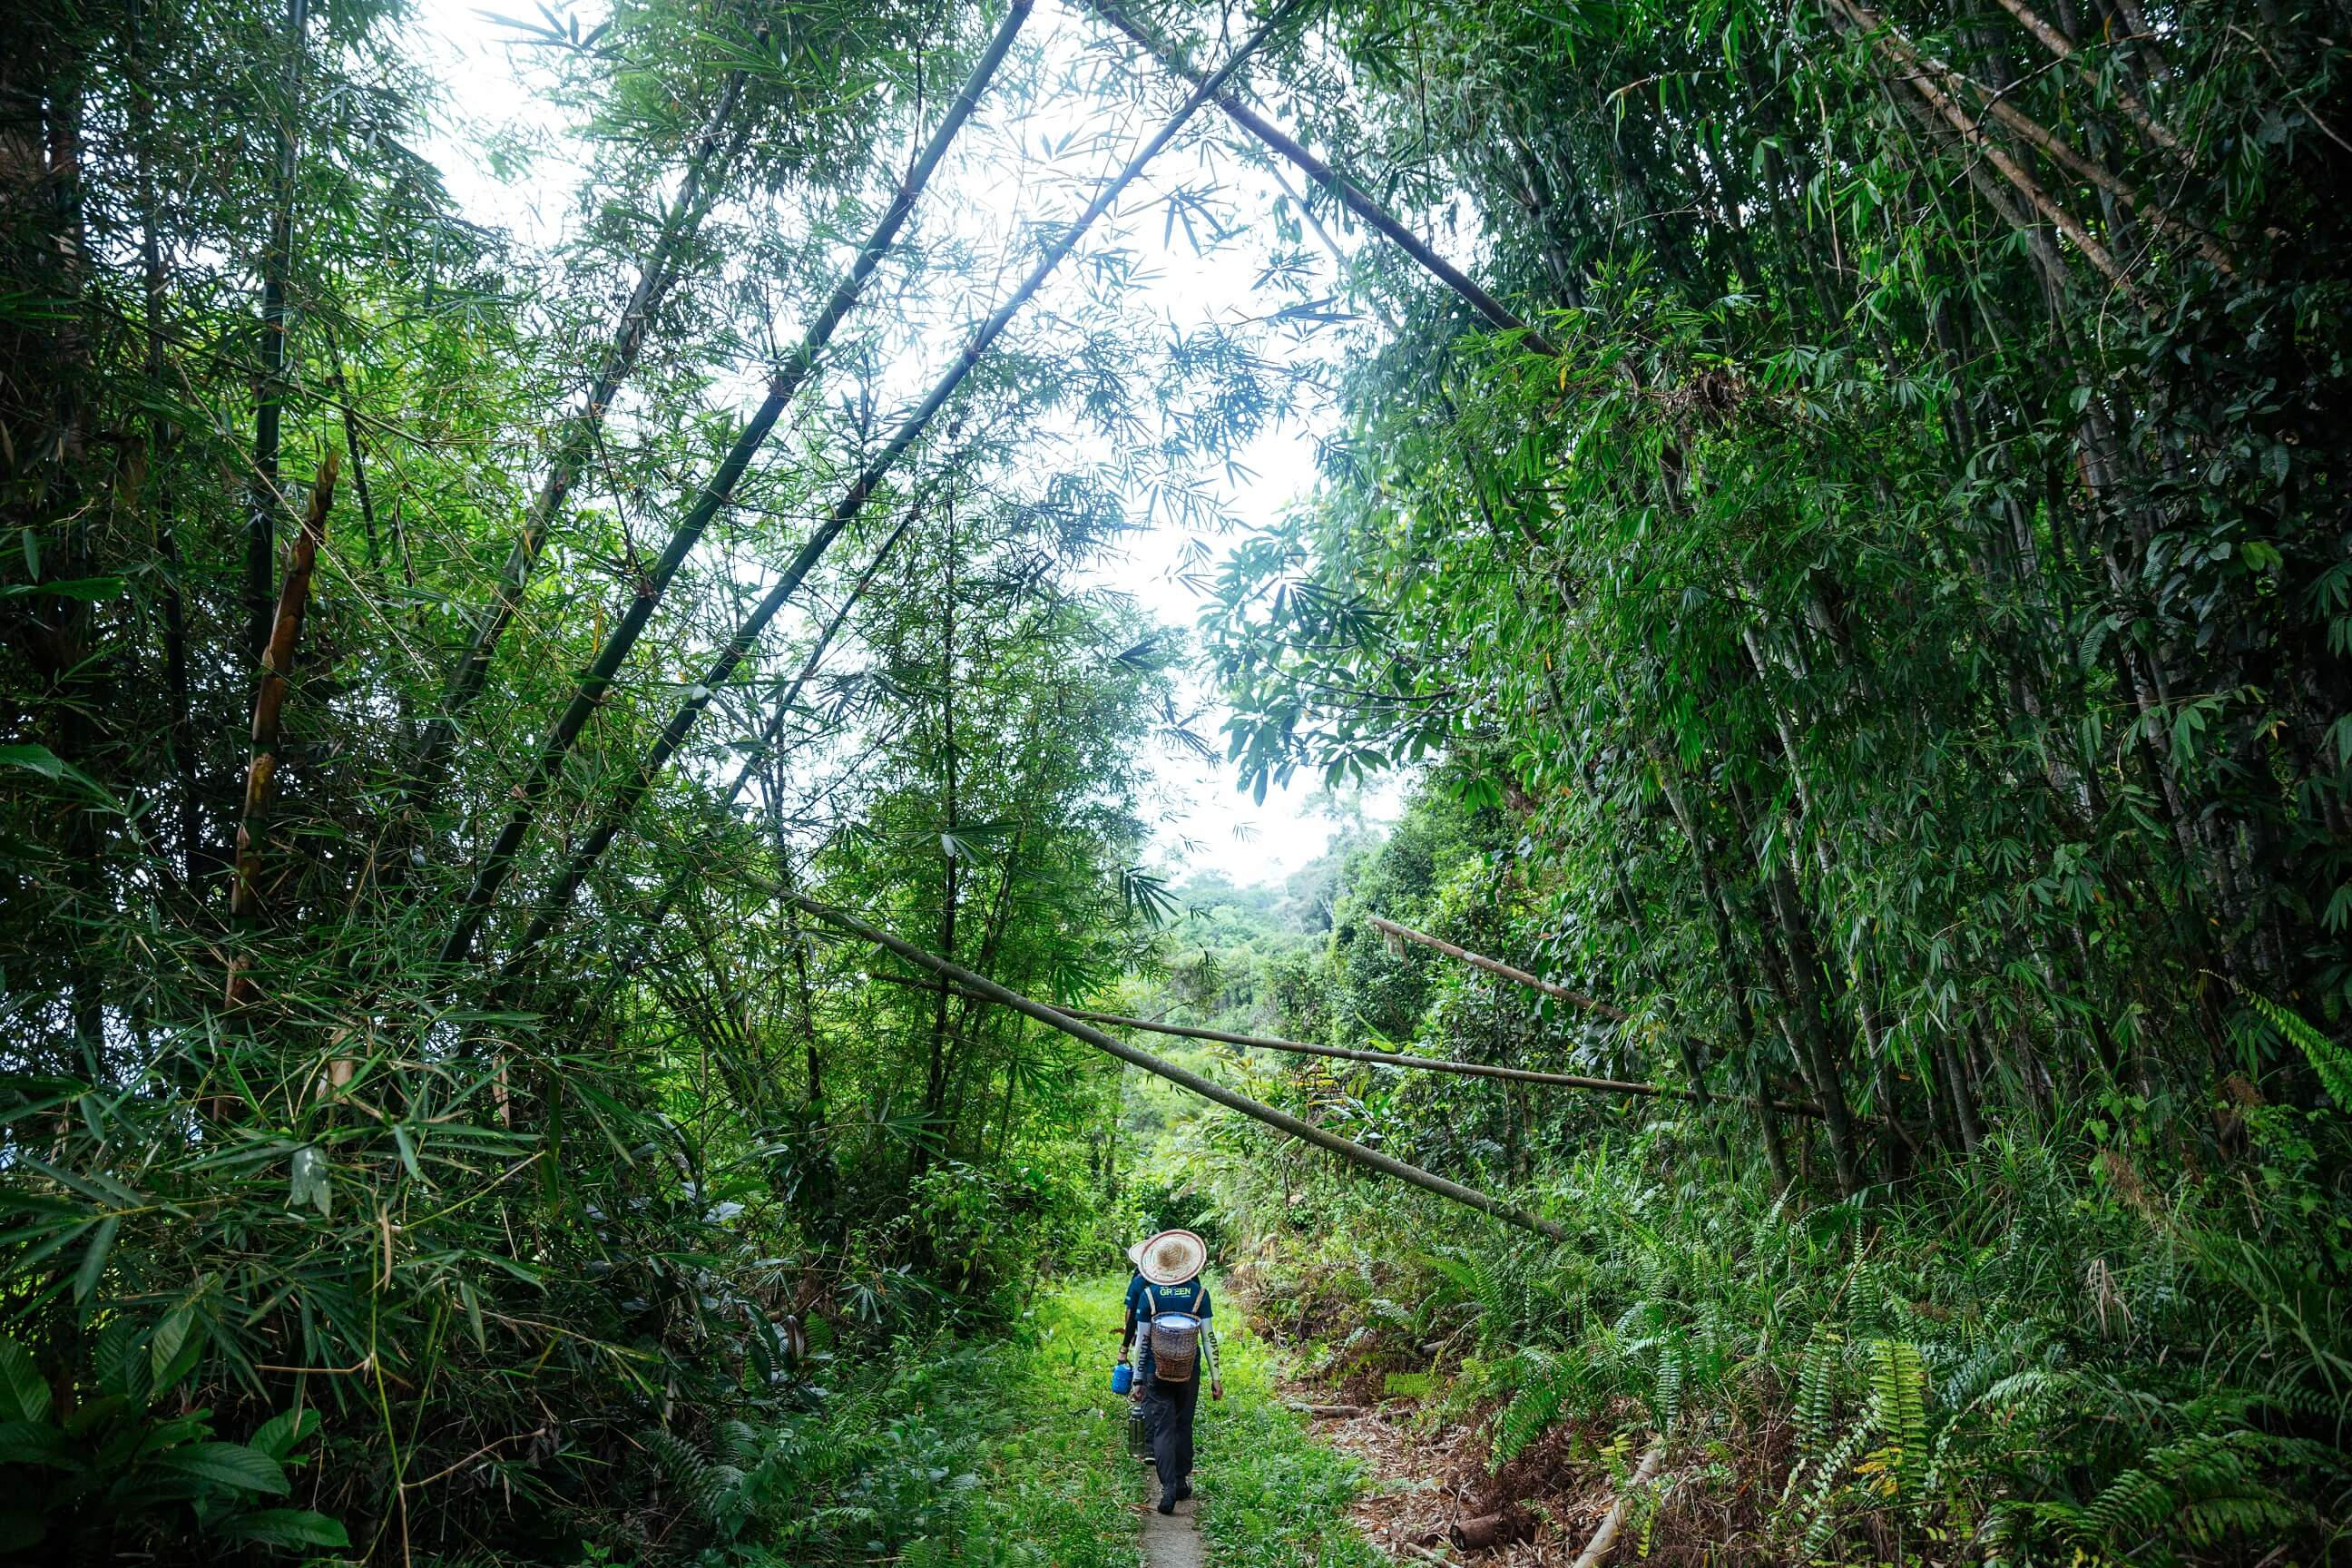 Zi leads guests on a walk through the bamboo forest.